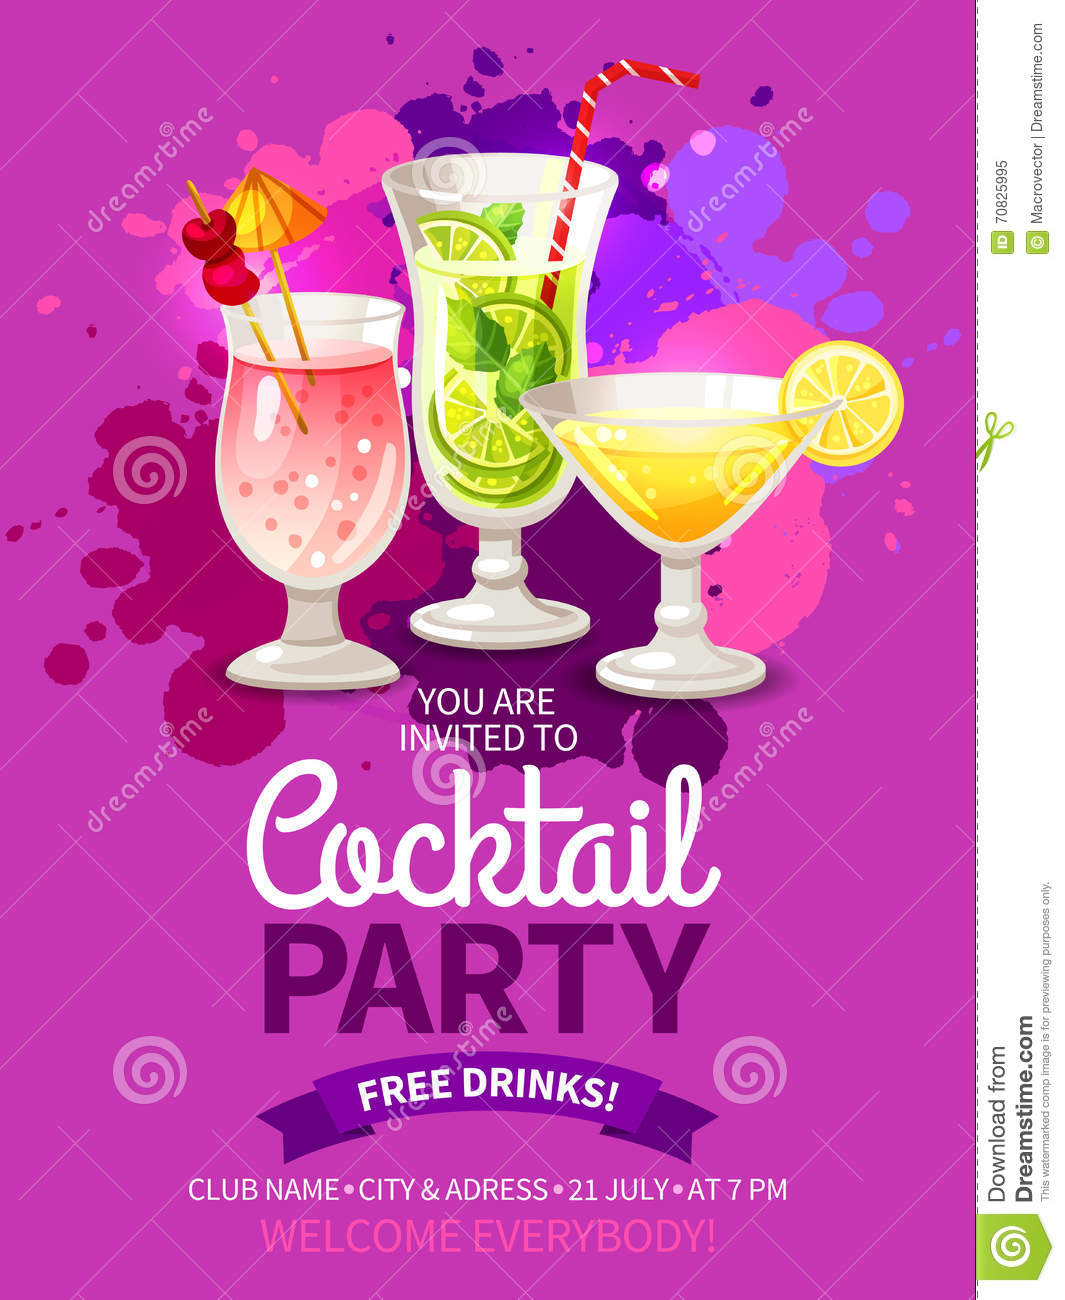 cocktails party flyers stock vector image of holiday 70825995. Black Bedroom Furniture Sets. Home Design Ideas